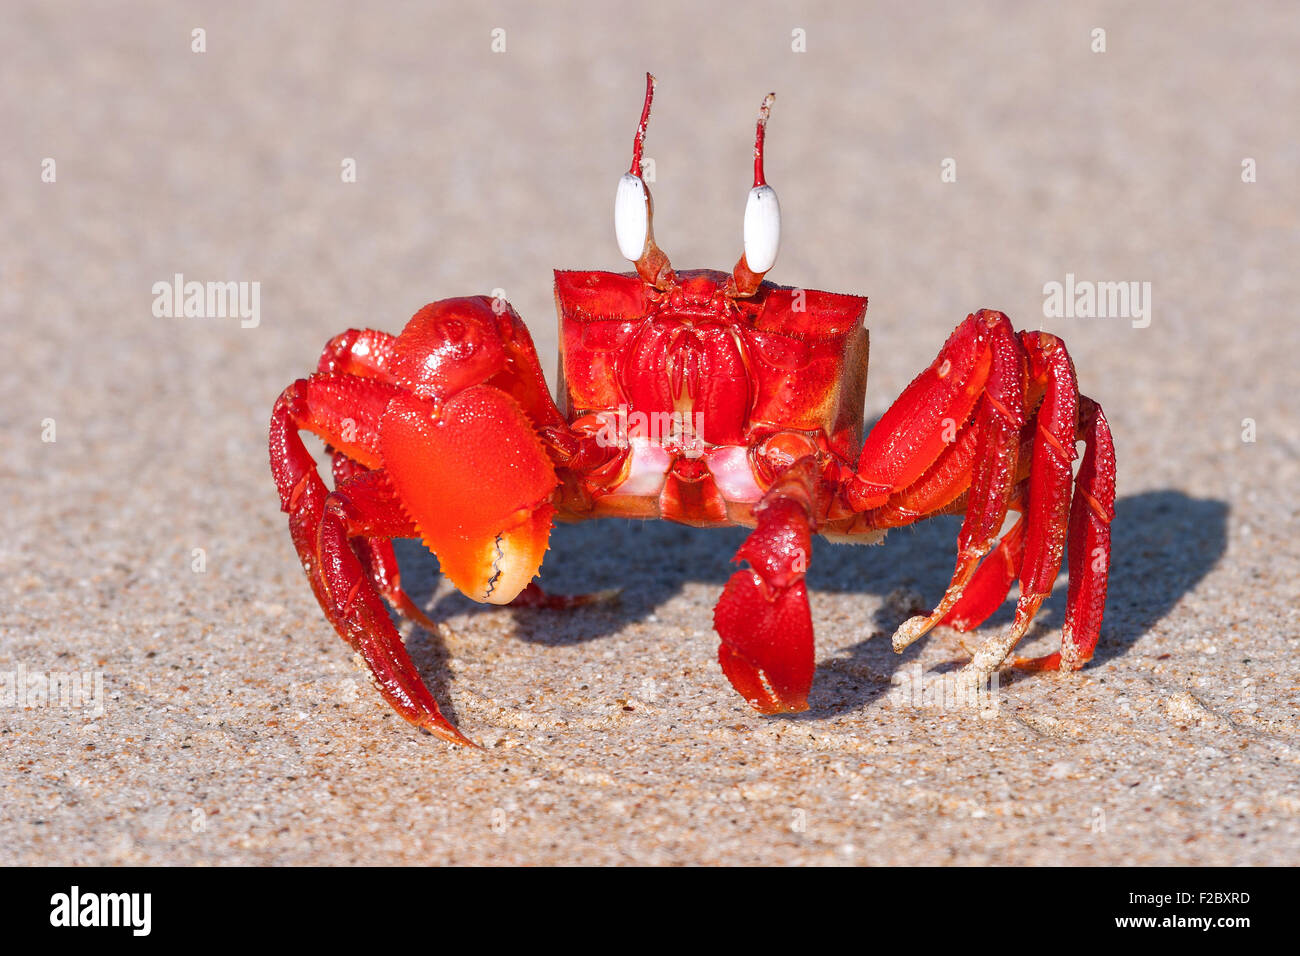 Red crab (Brachyura) on the beach of Ngapali Beach, Ngapali, Thandwe, Rakhine State, Myanmar - Stock Image